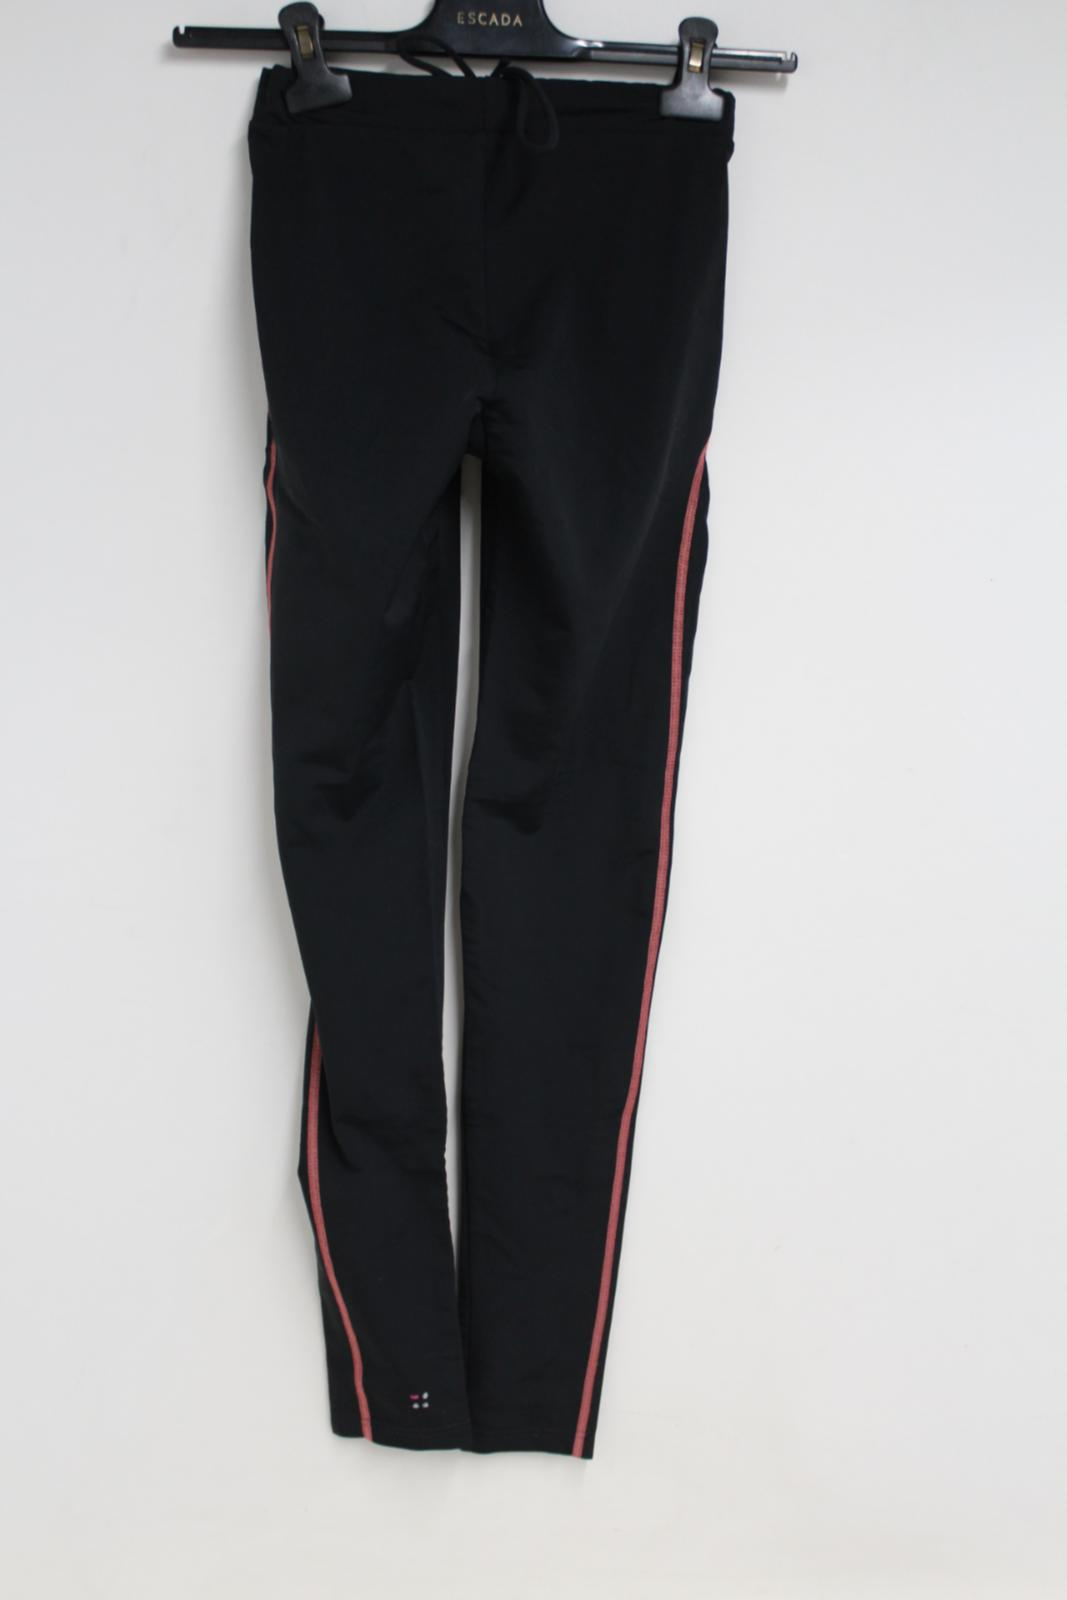 Sweaty-Betty-Senoras-Pantalones-Negros-Activewear-Ajustados-Leggings-Talla-XS-W24-L28 miniatura 6